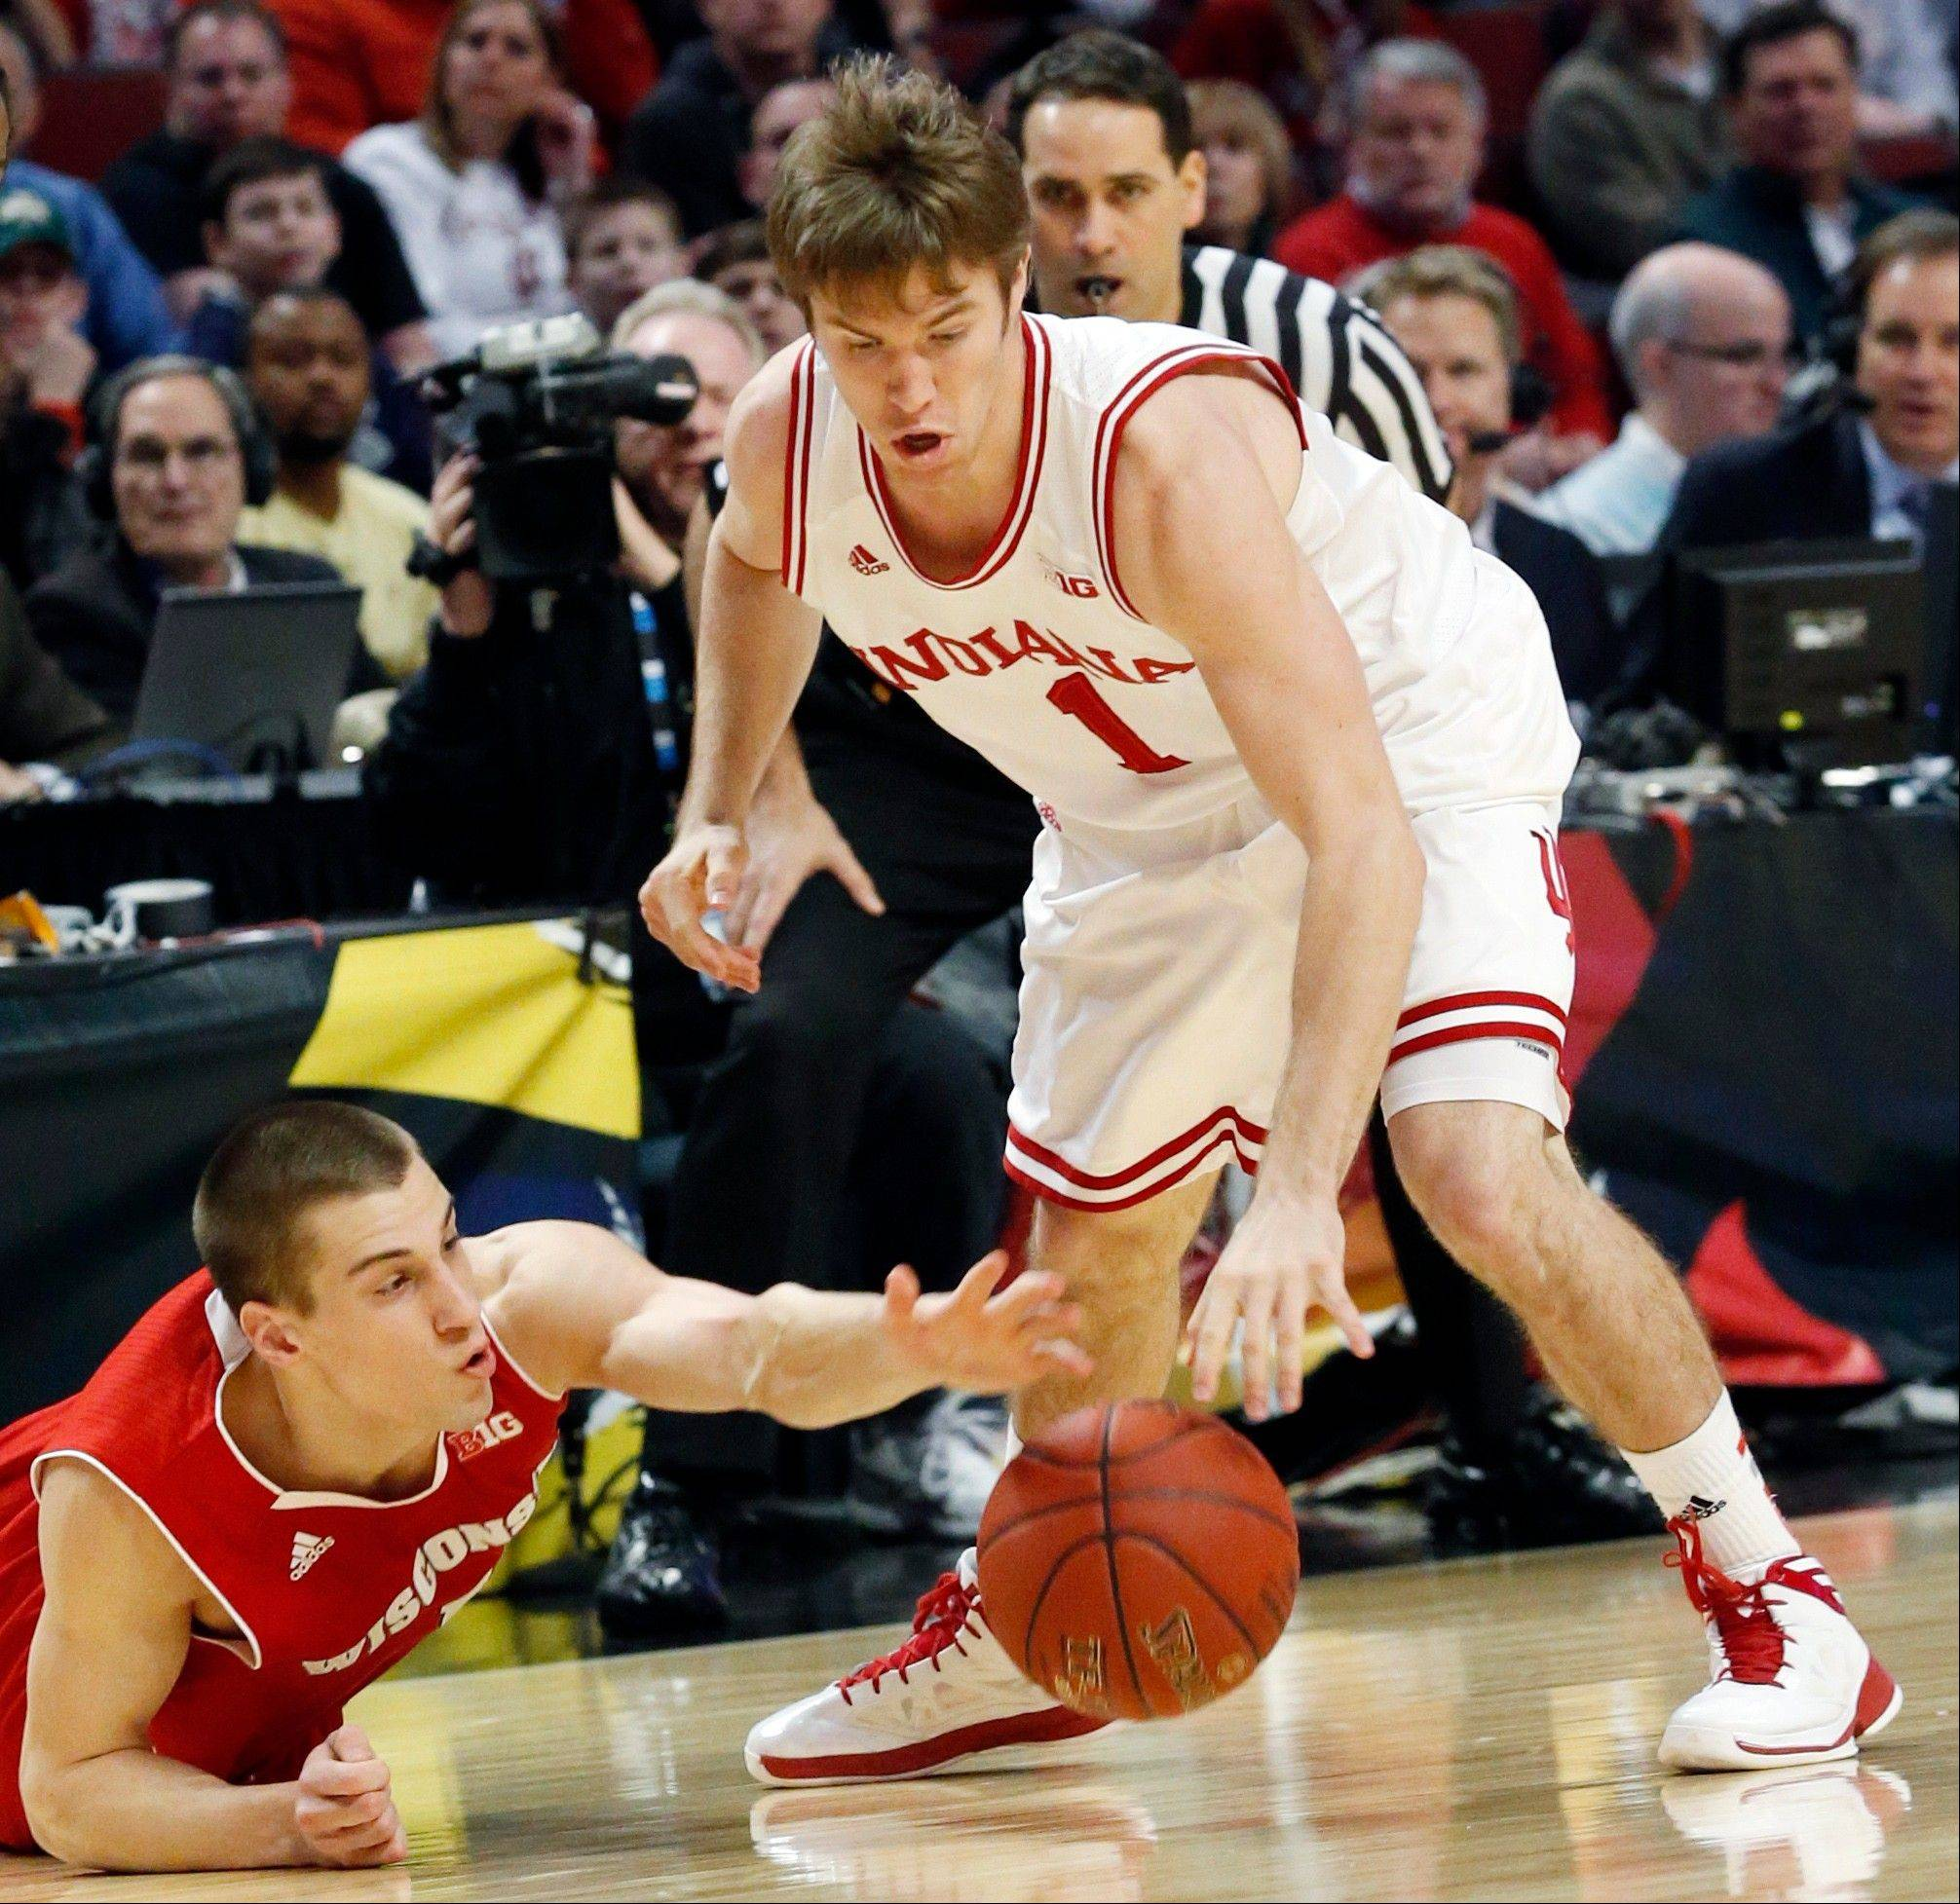 Wisconsin's Ben Brust and Indiana's Jordan Hulls battle for a loose ball during the first half of an NCAA college basketball game at the Big Ten tournament Saturday, March 16, 2013, in Chicago.